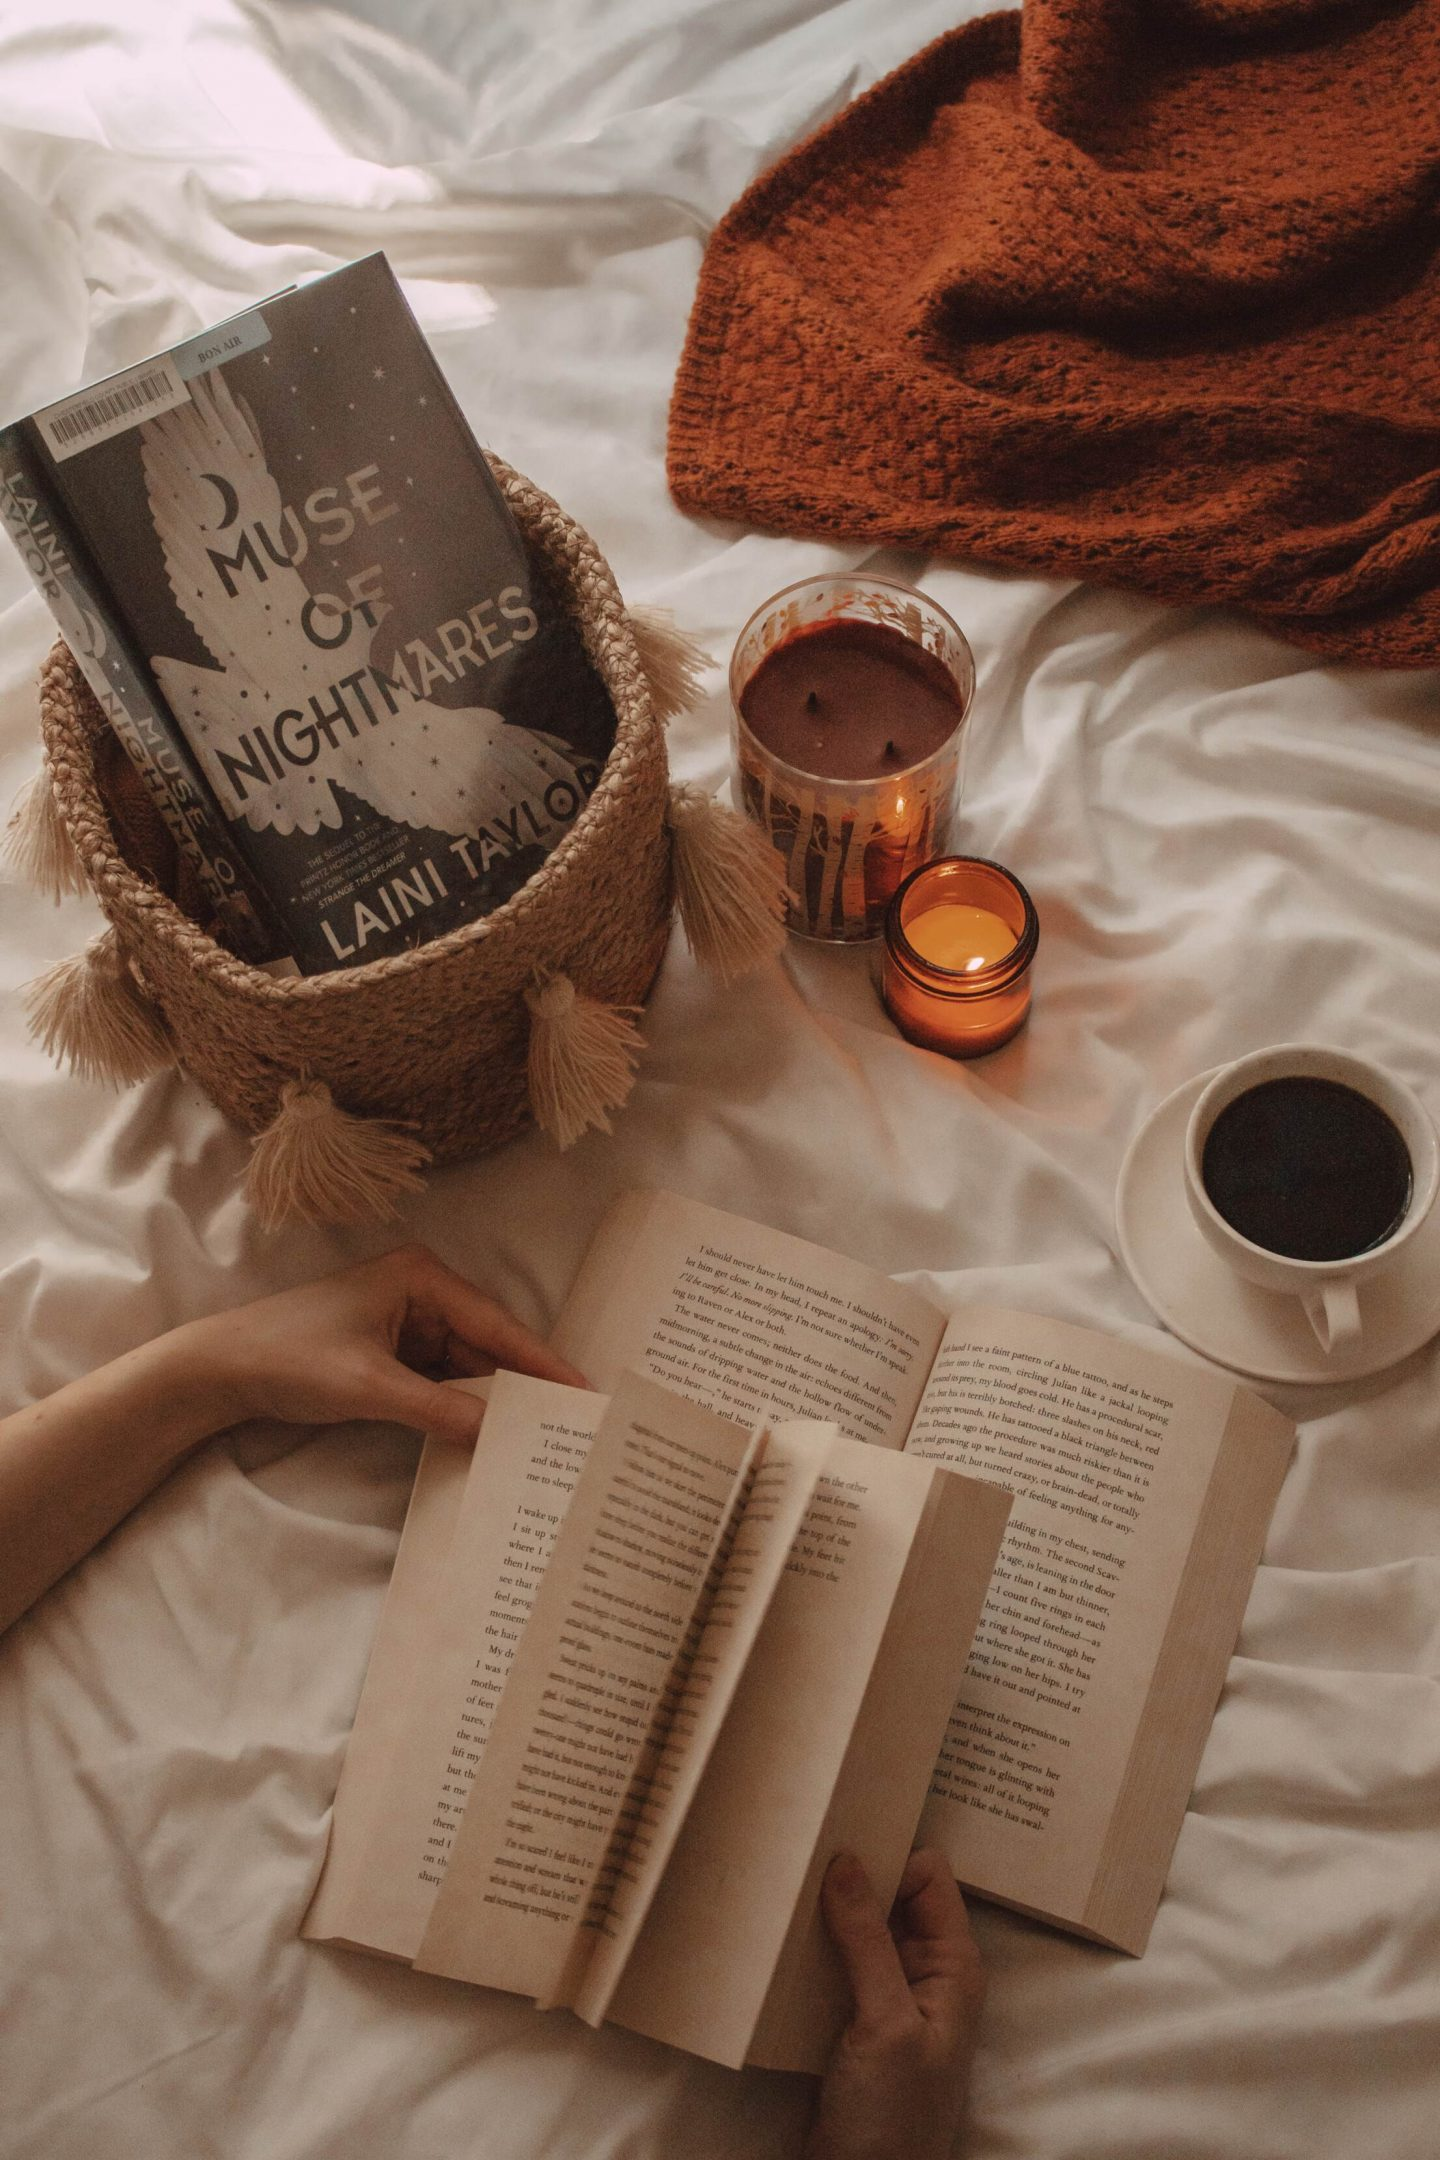 hands flipping pages of a book while it's laying on top of another book. muse of nightmares novel sits in a basket next to a lit candle and a mug of coffee.